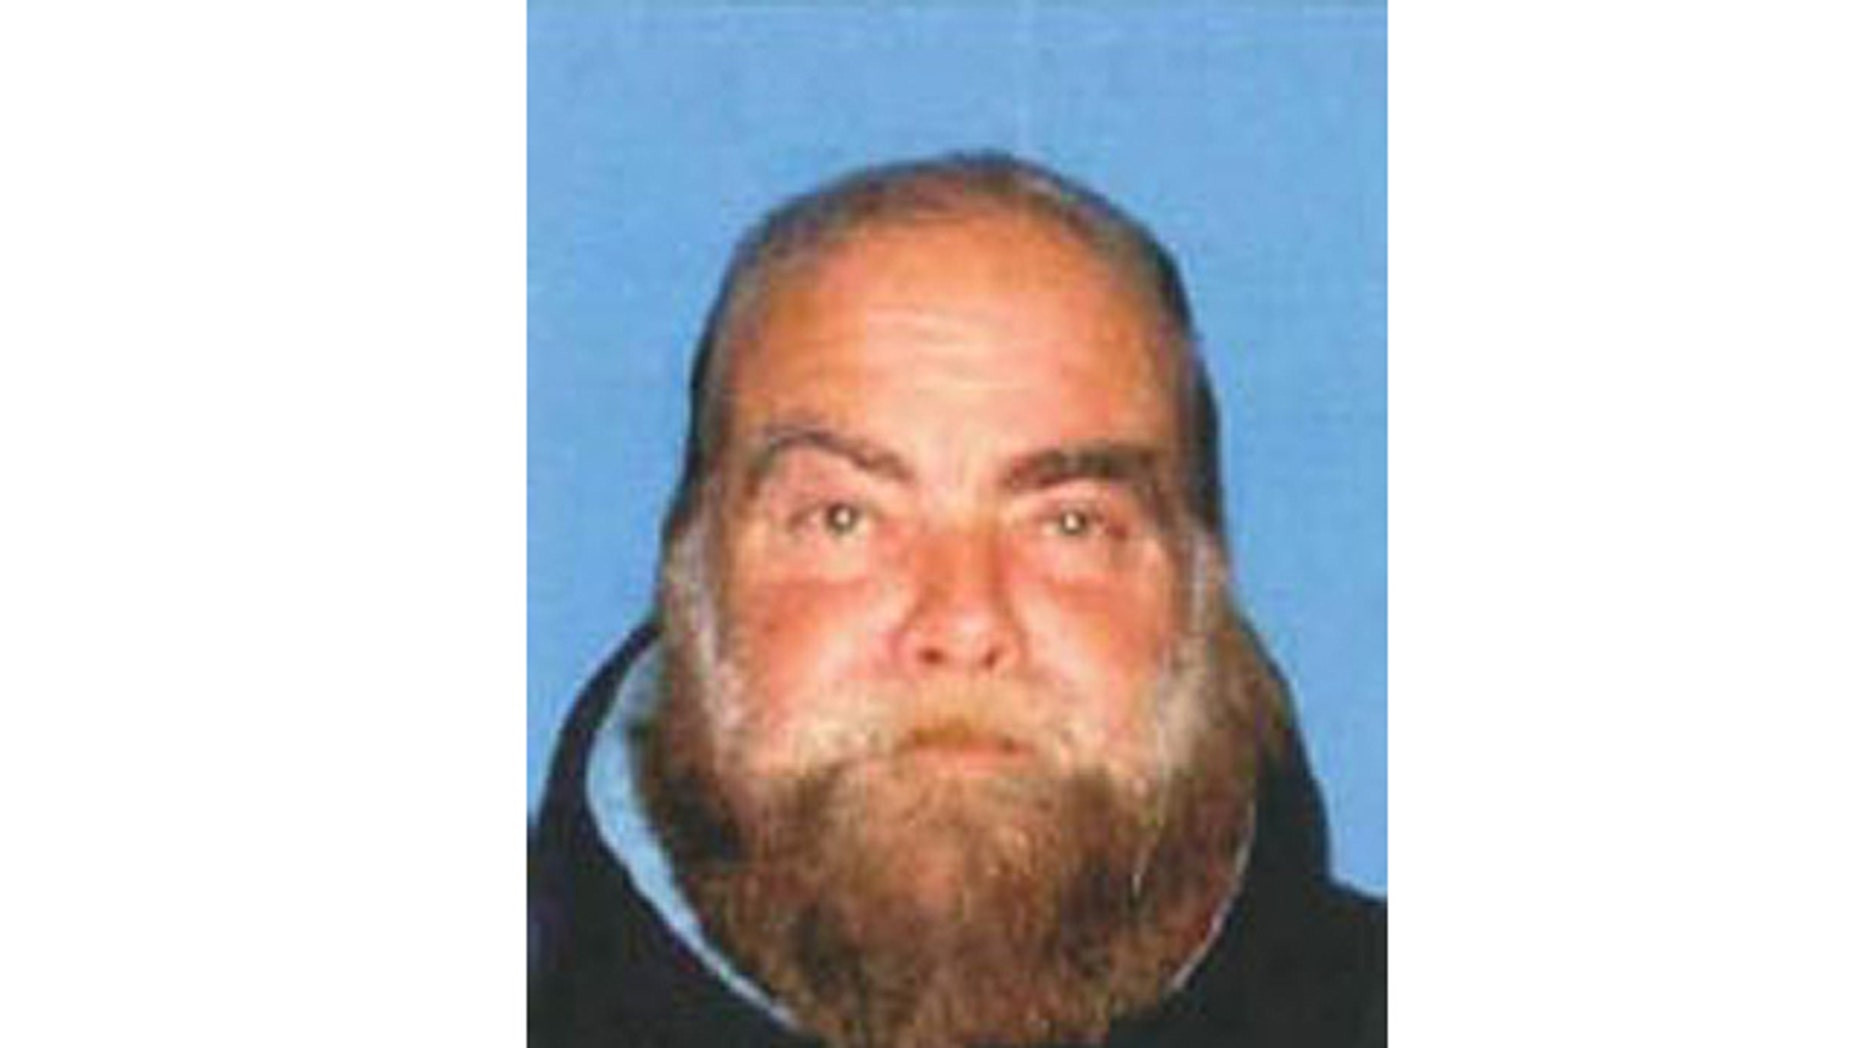 Ron Hirsh is wanted by the FBI in connection with a bombing outside of a synagogue in Santa Monica, Calif.